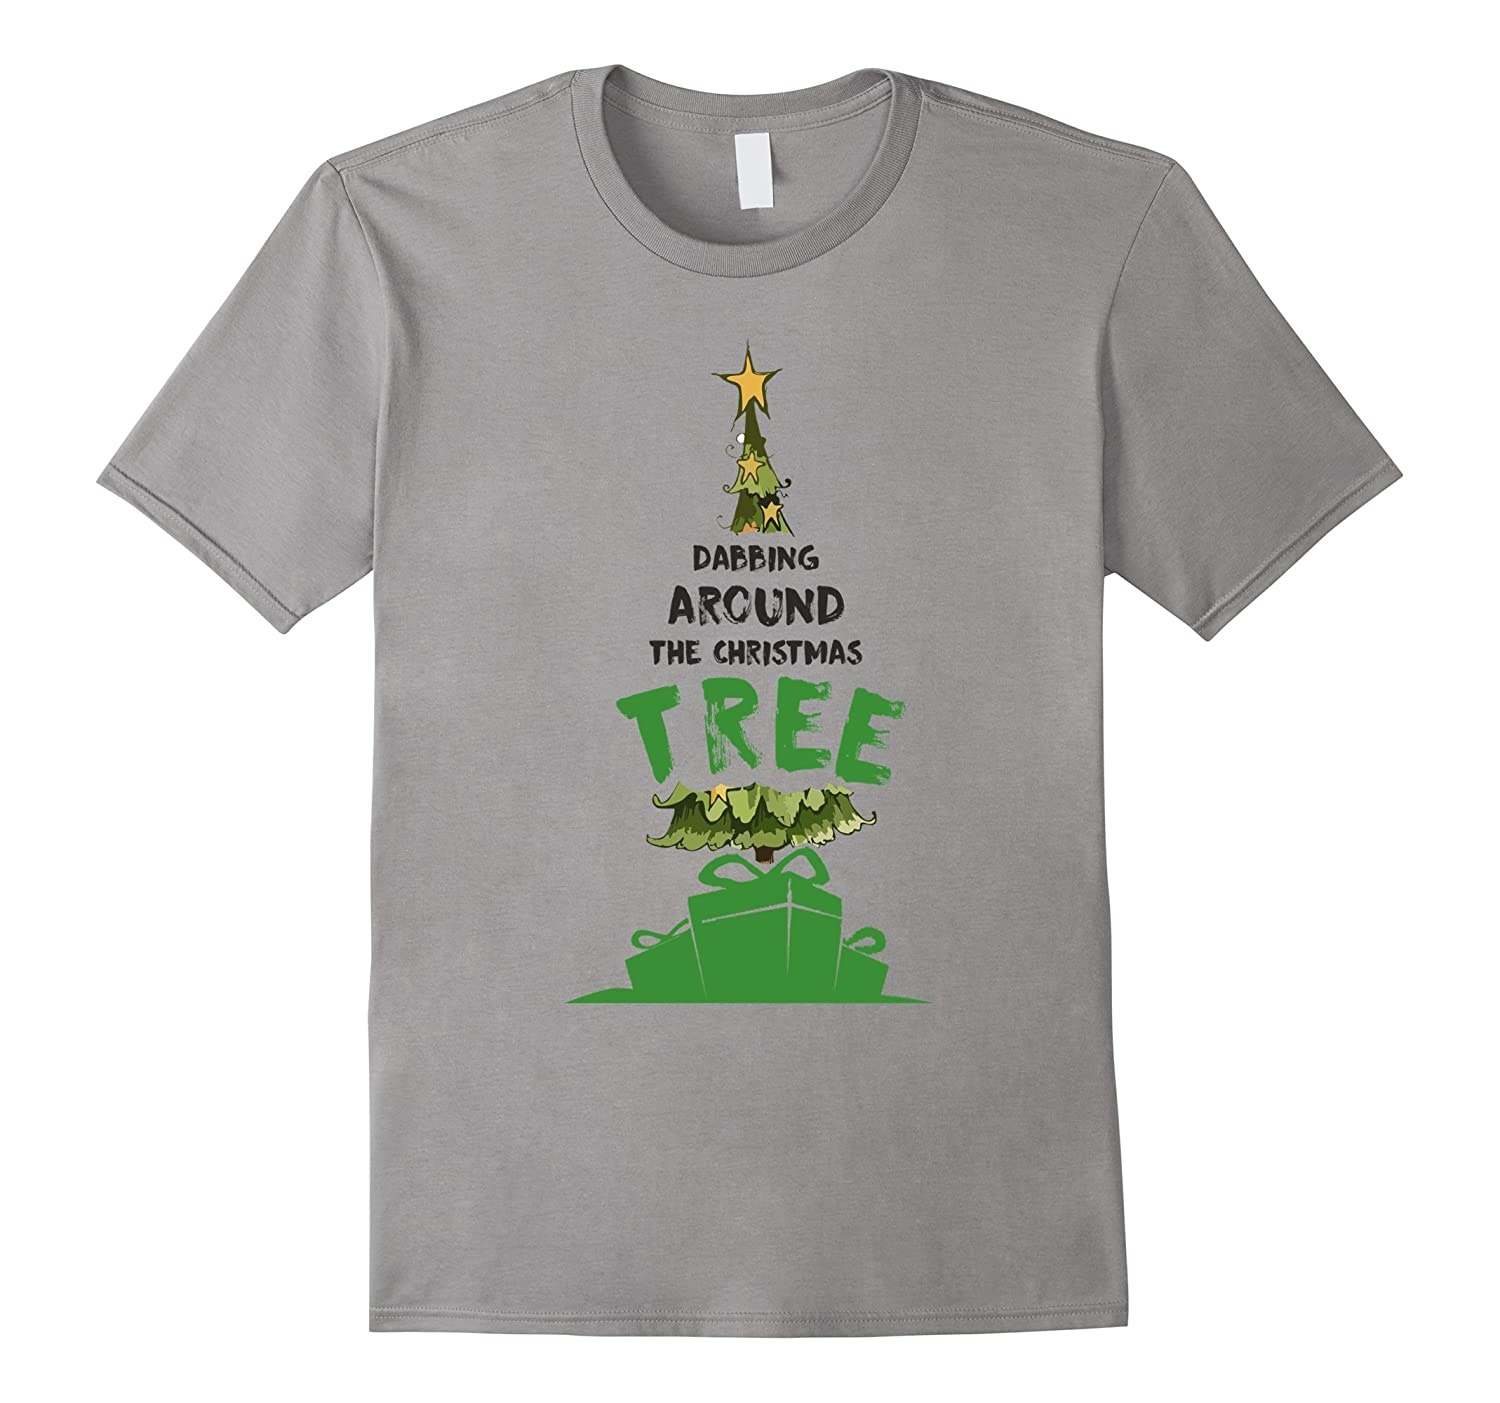 DABBING AROUND THE CHRISTMAS TREE CUTE Tulioct T-SHIRT-Art